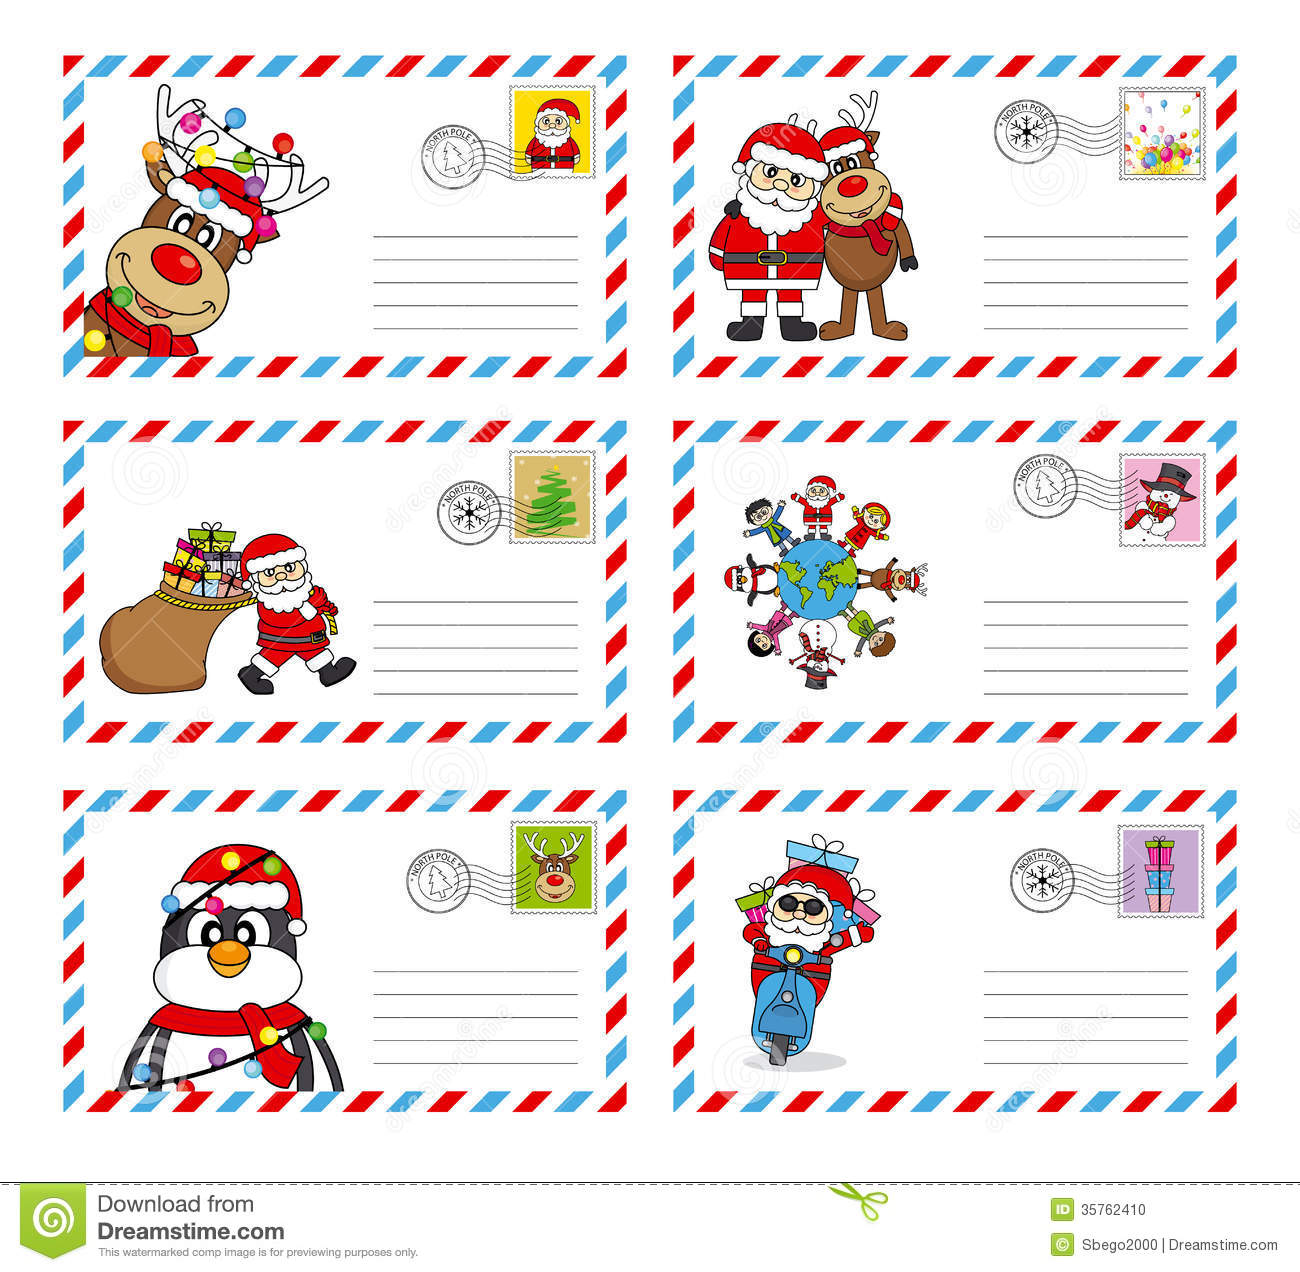 Envelope Template From Santa | Search Results | Calendar 2015